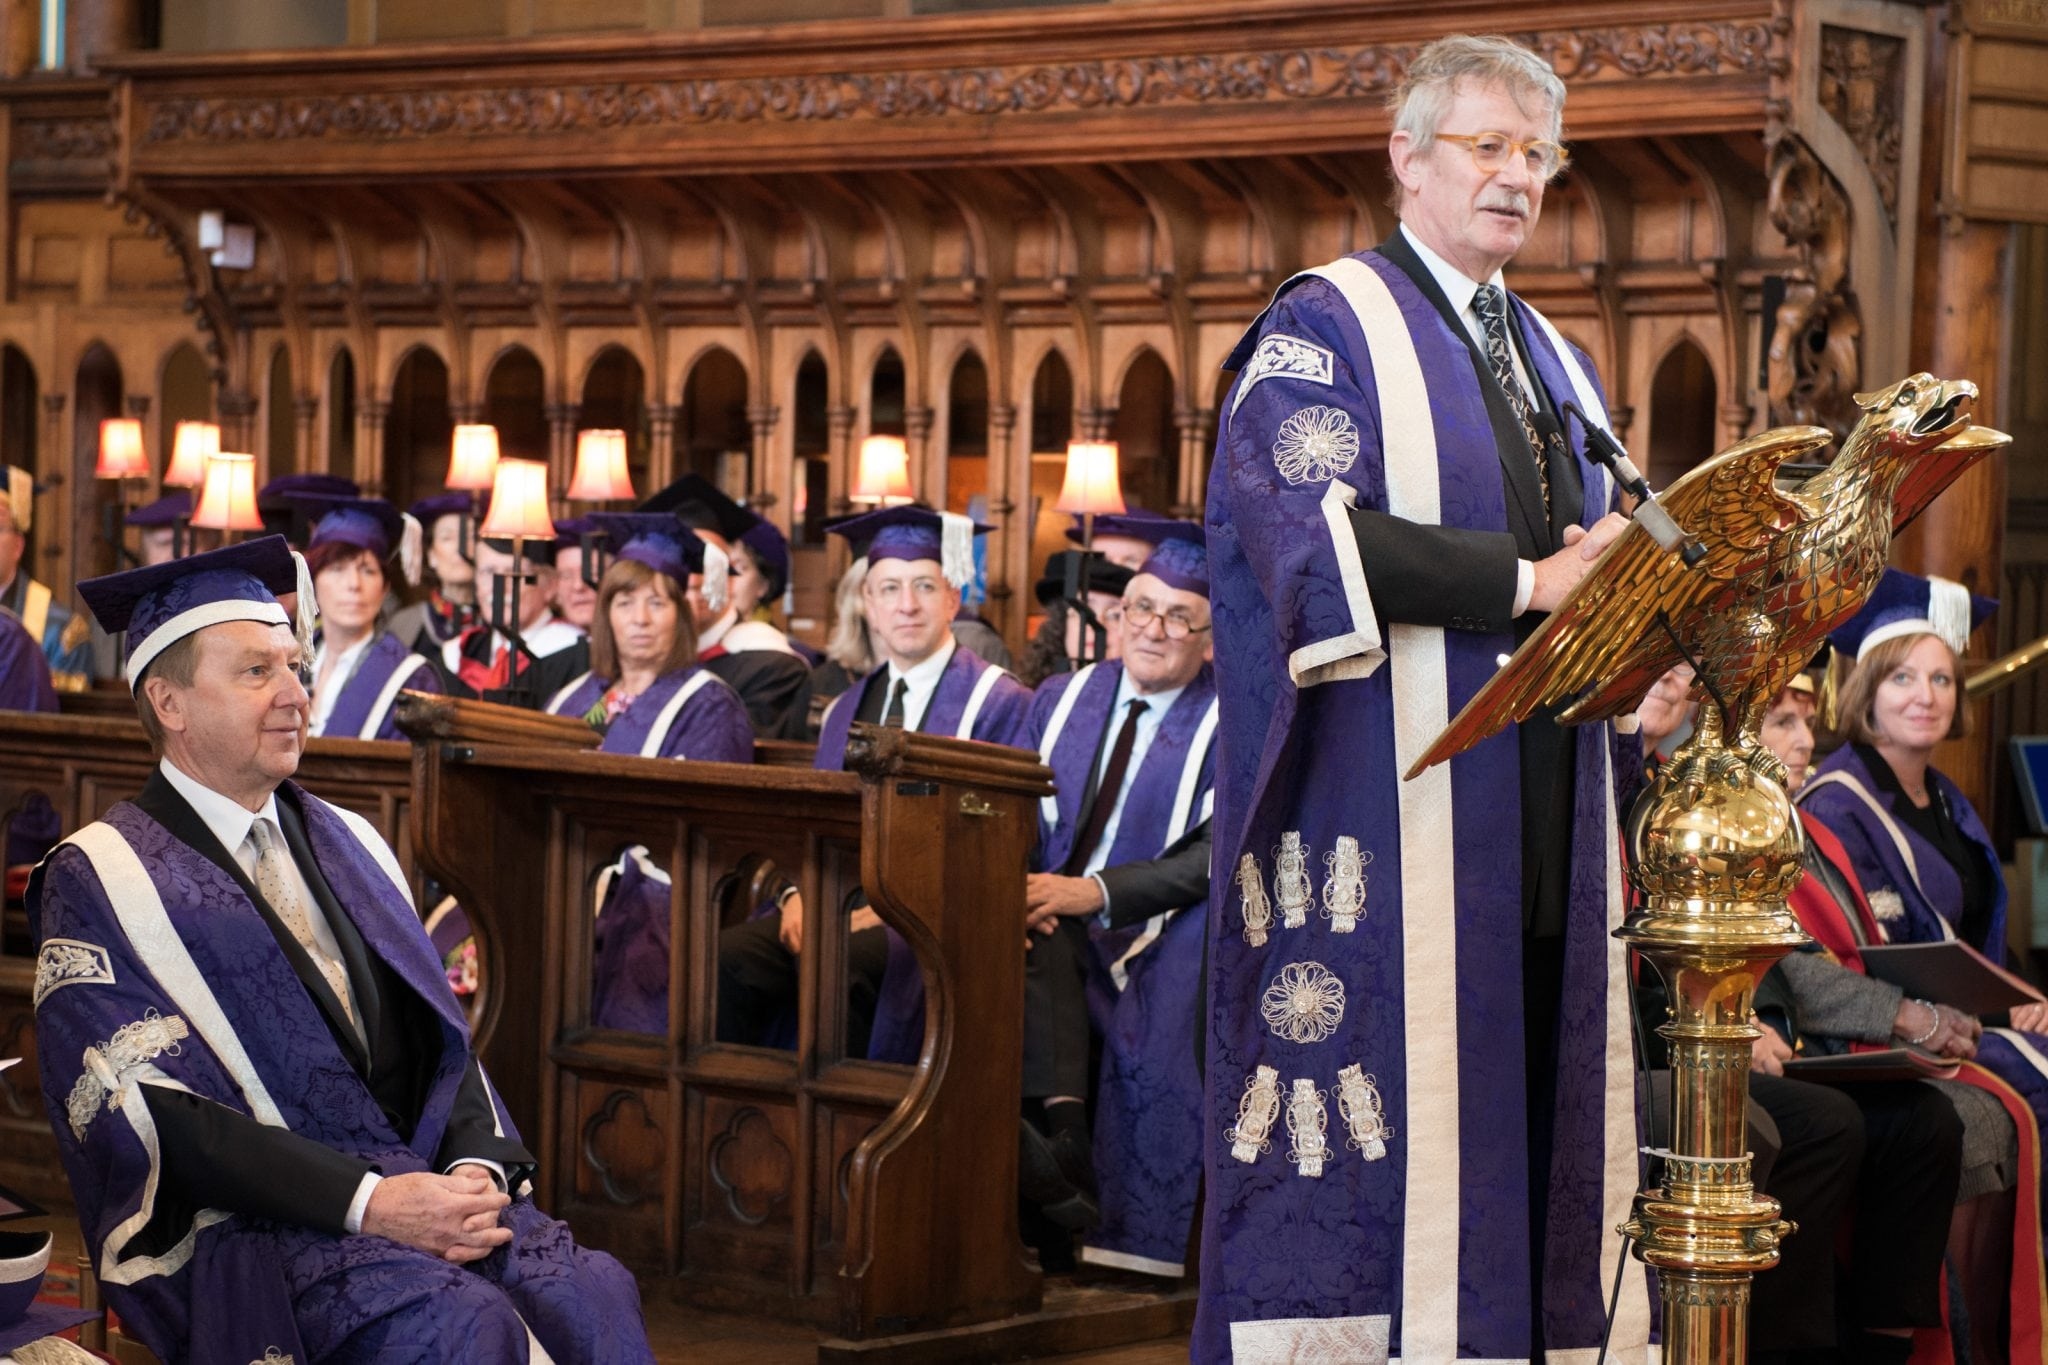 AUB appoints Sir Christopher Frayling as new Chancellor